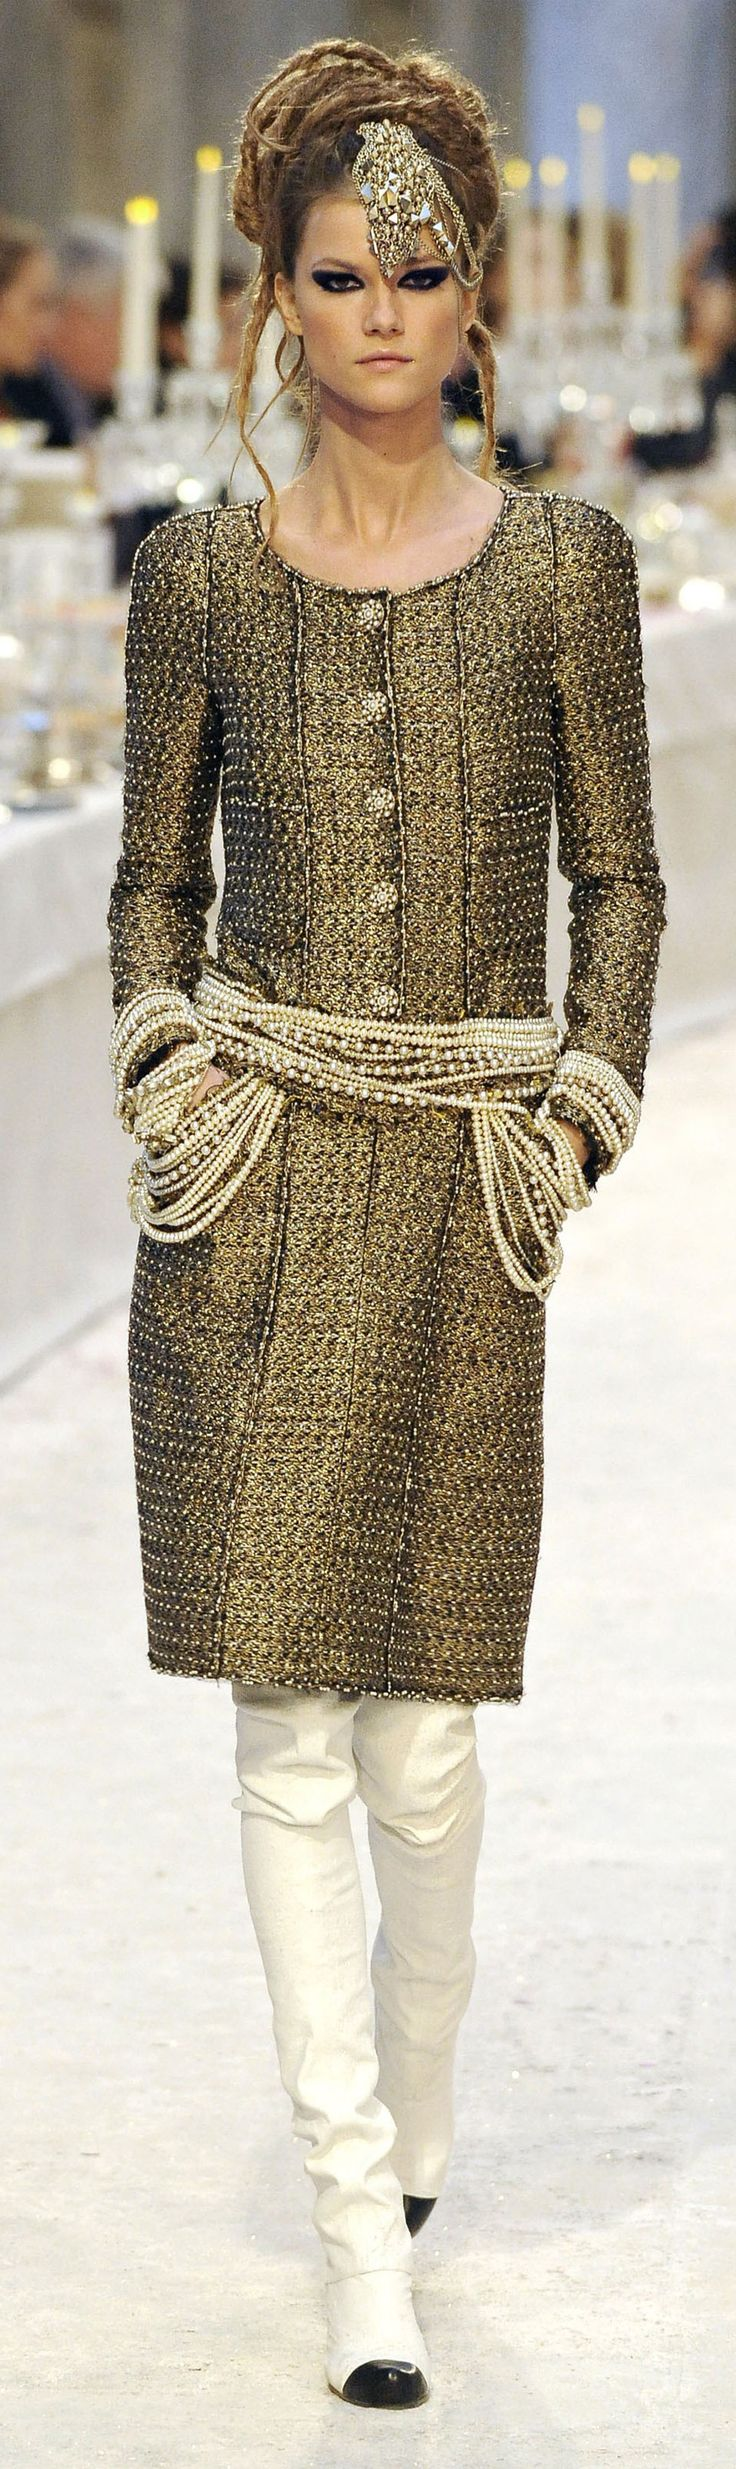 Gorgeous India Influence in Chanel's Paris-Bombay Pre-Fall 2012 2013 collection